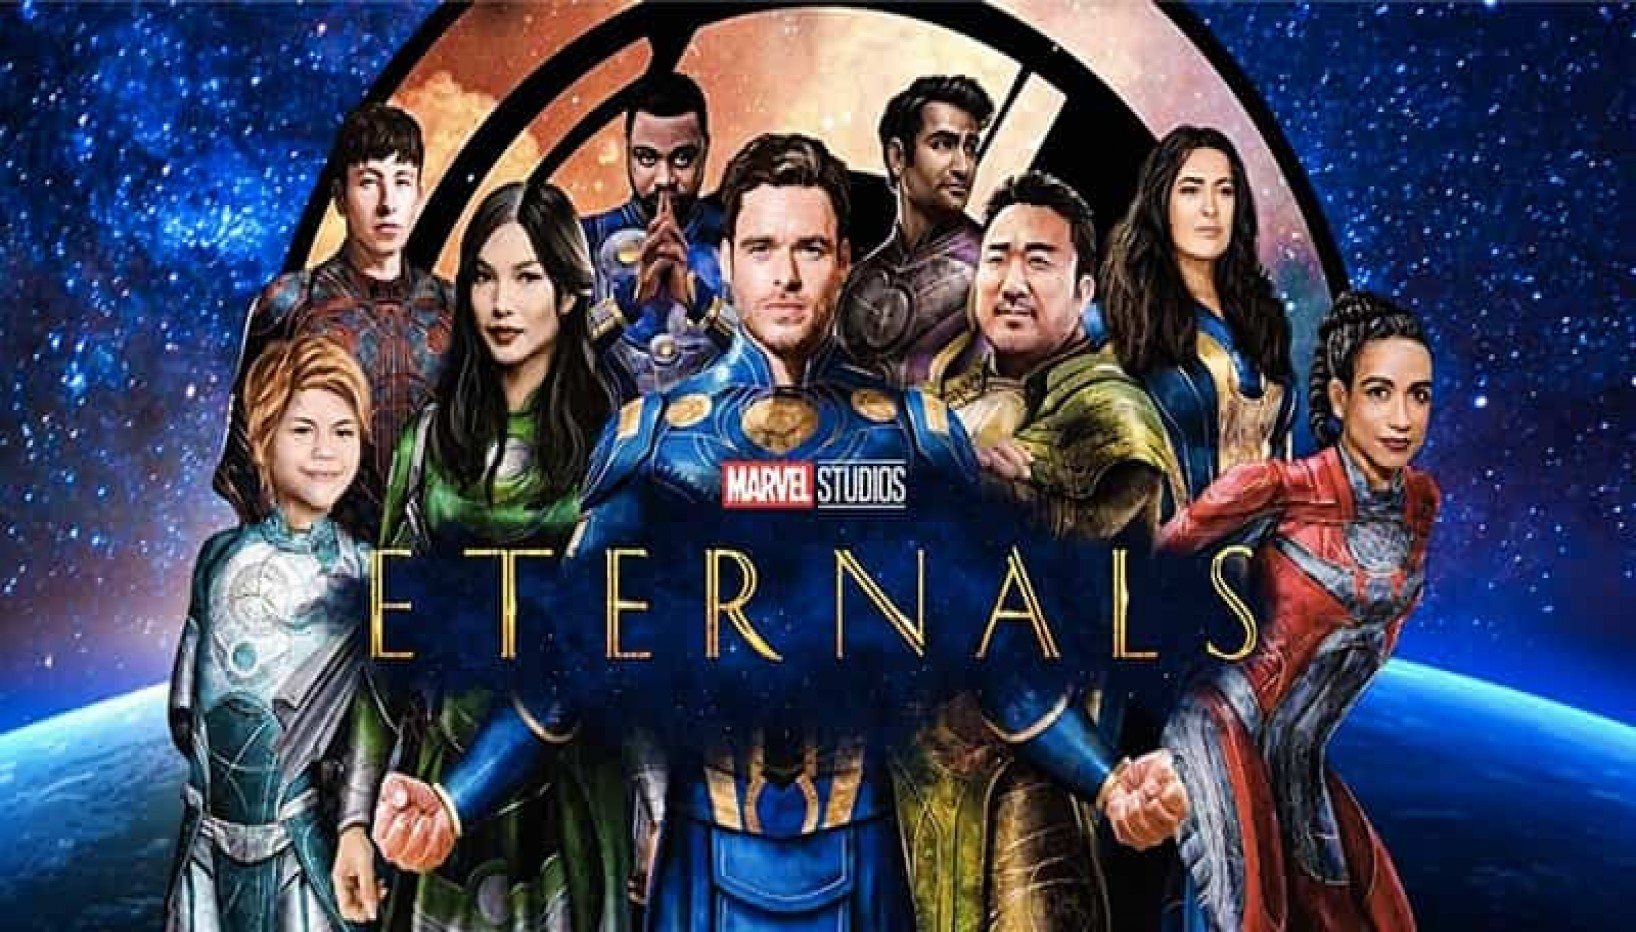 The Eternals Trailer Just Dropped, Here Is How They Will Fit In The Marvel Cinematic Universe